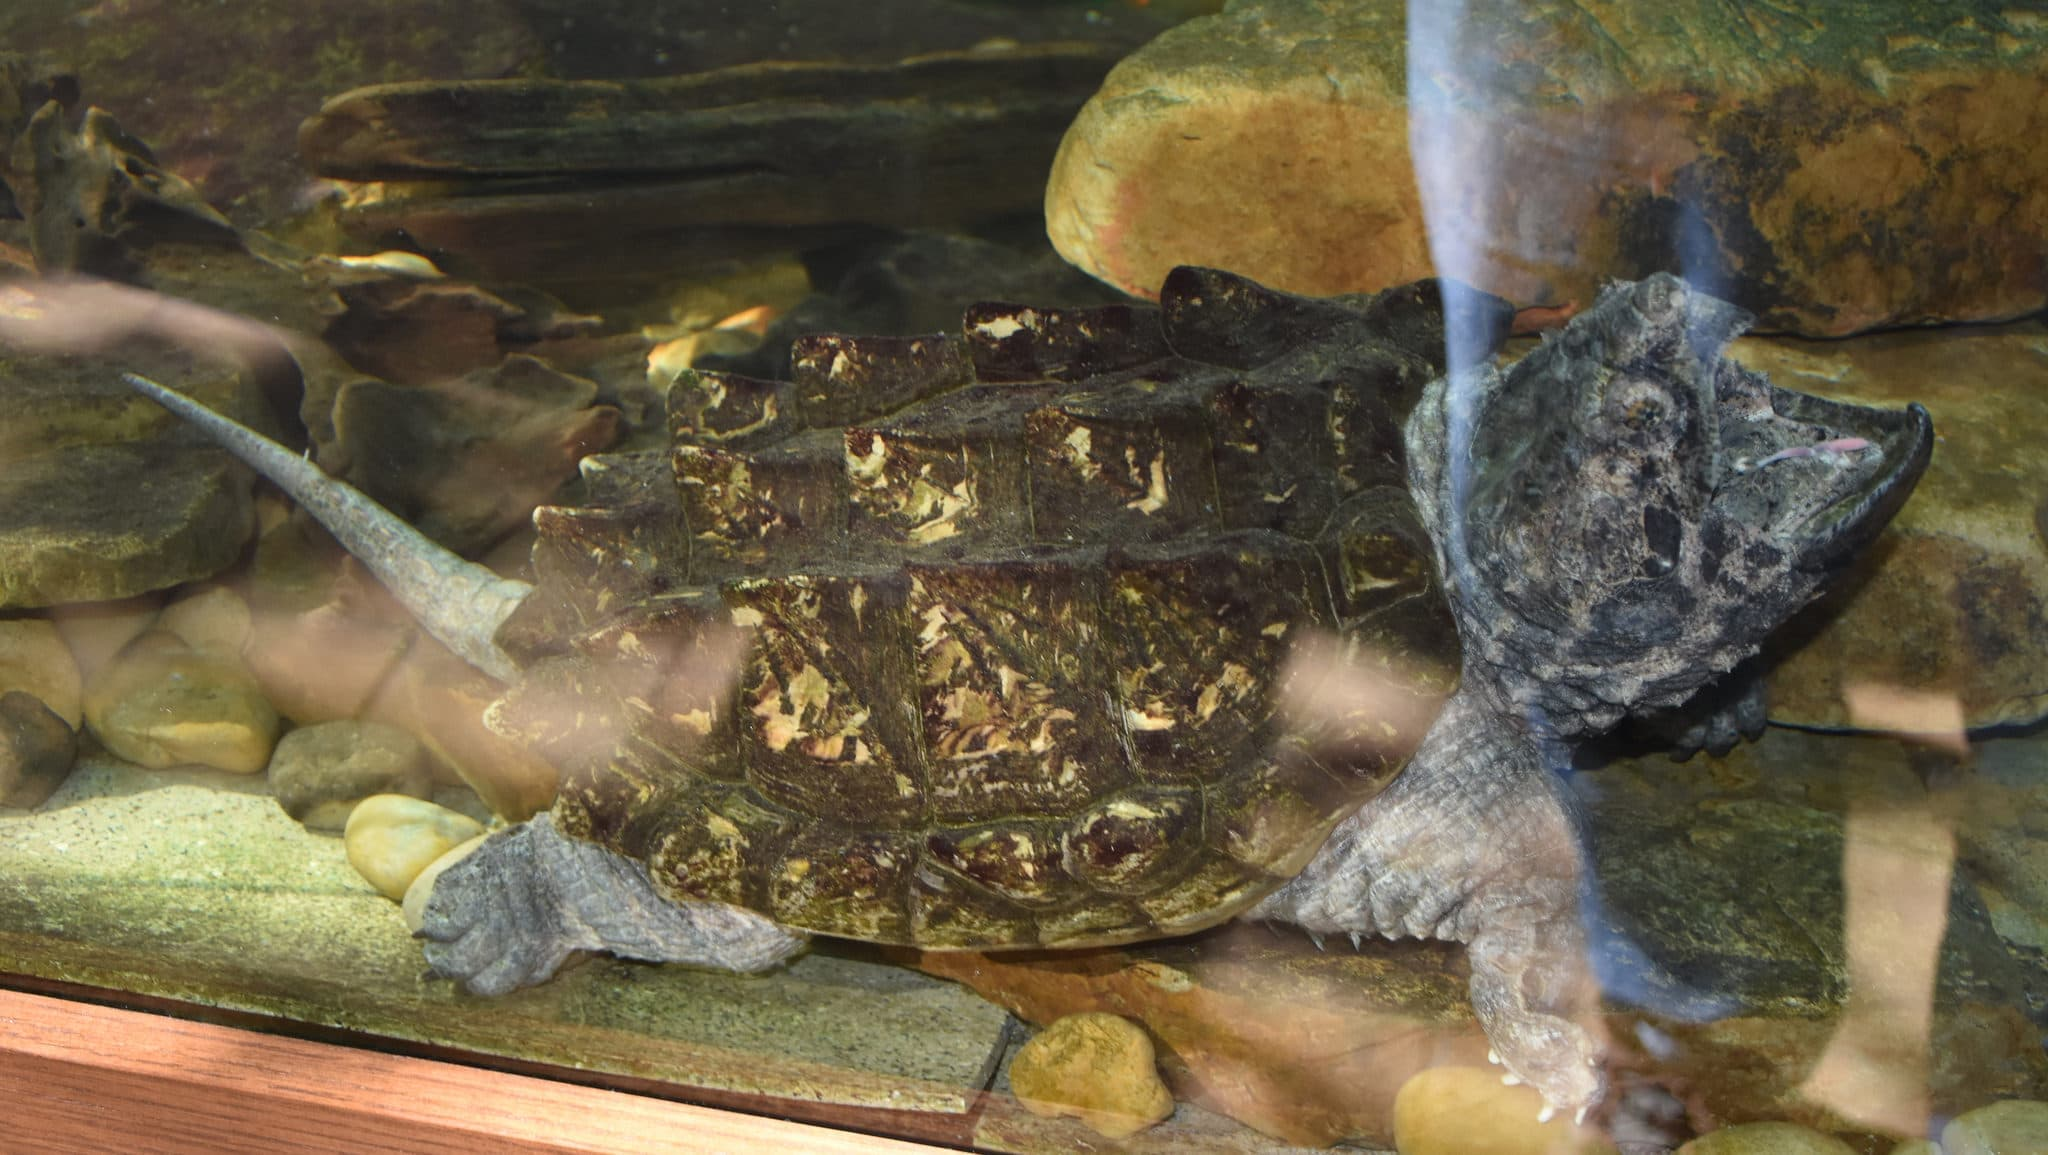 9 Alligator Snapping Turtle Wallpapers Hd